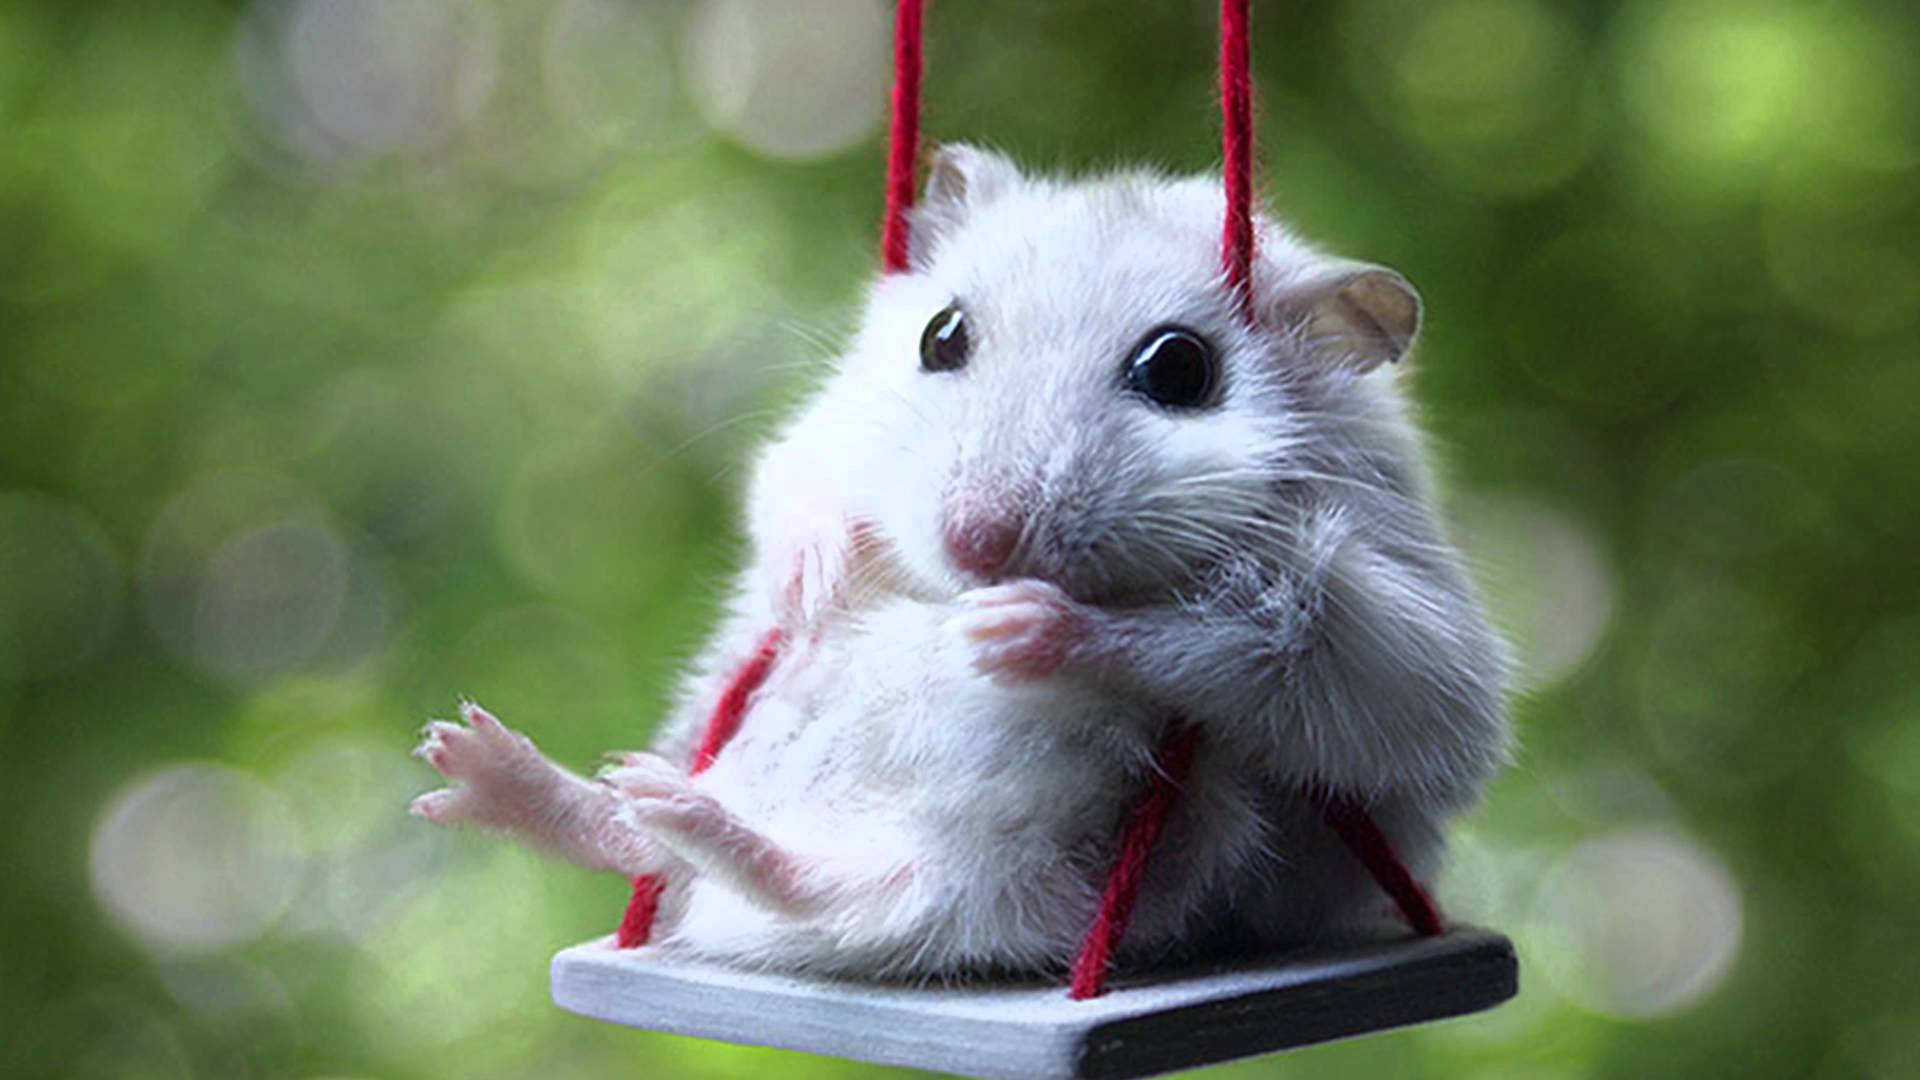 Adorable Hamsters That Will Cause A Cuteness Overload - YouTube